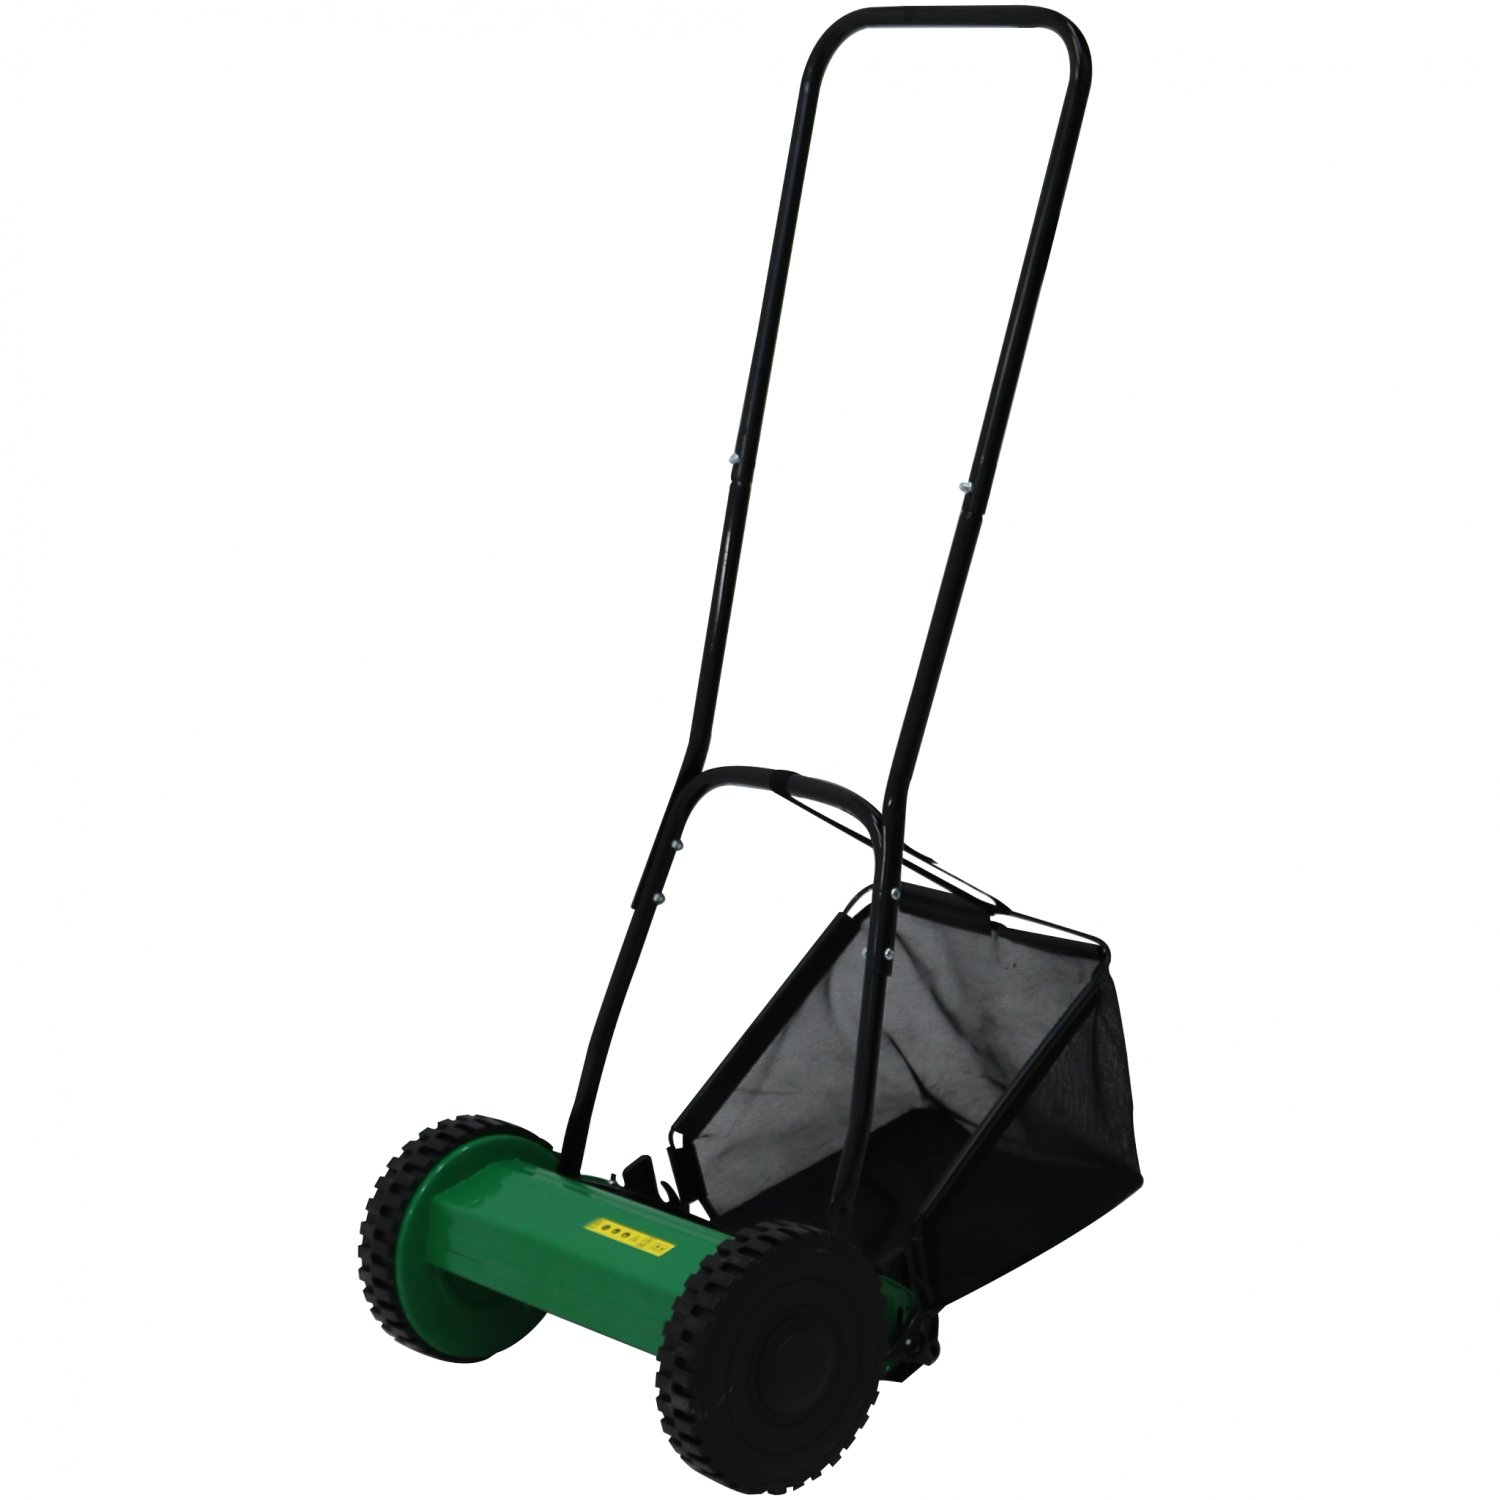 30cm Manual Hand Push Grass Lawn Mower Lawnmower 30cm Cutting